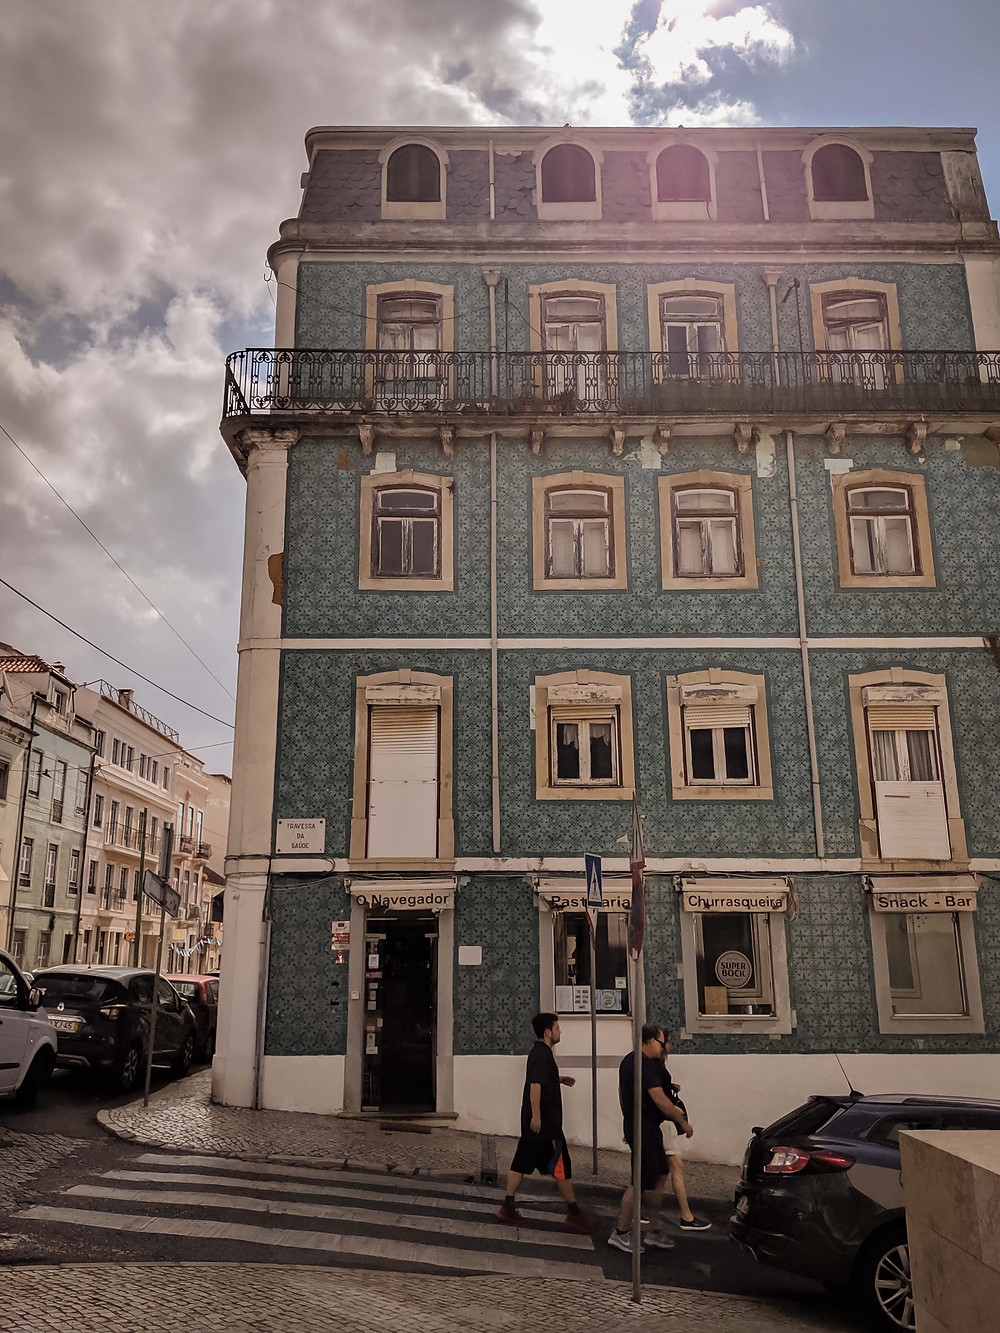 Street photography in Lisbon. Photographed by Nicole Leanne Photography.